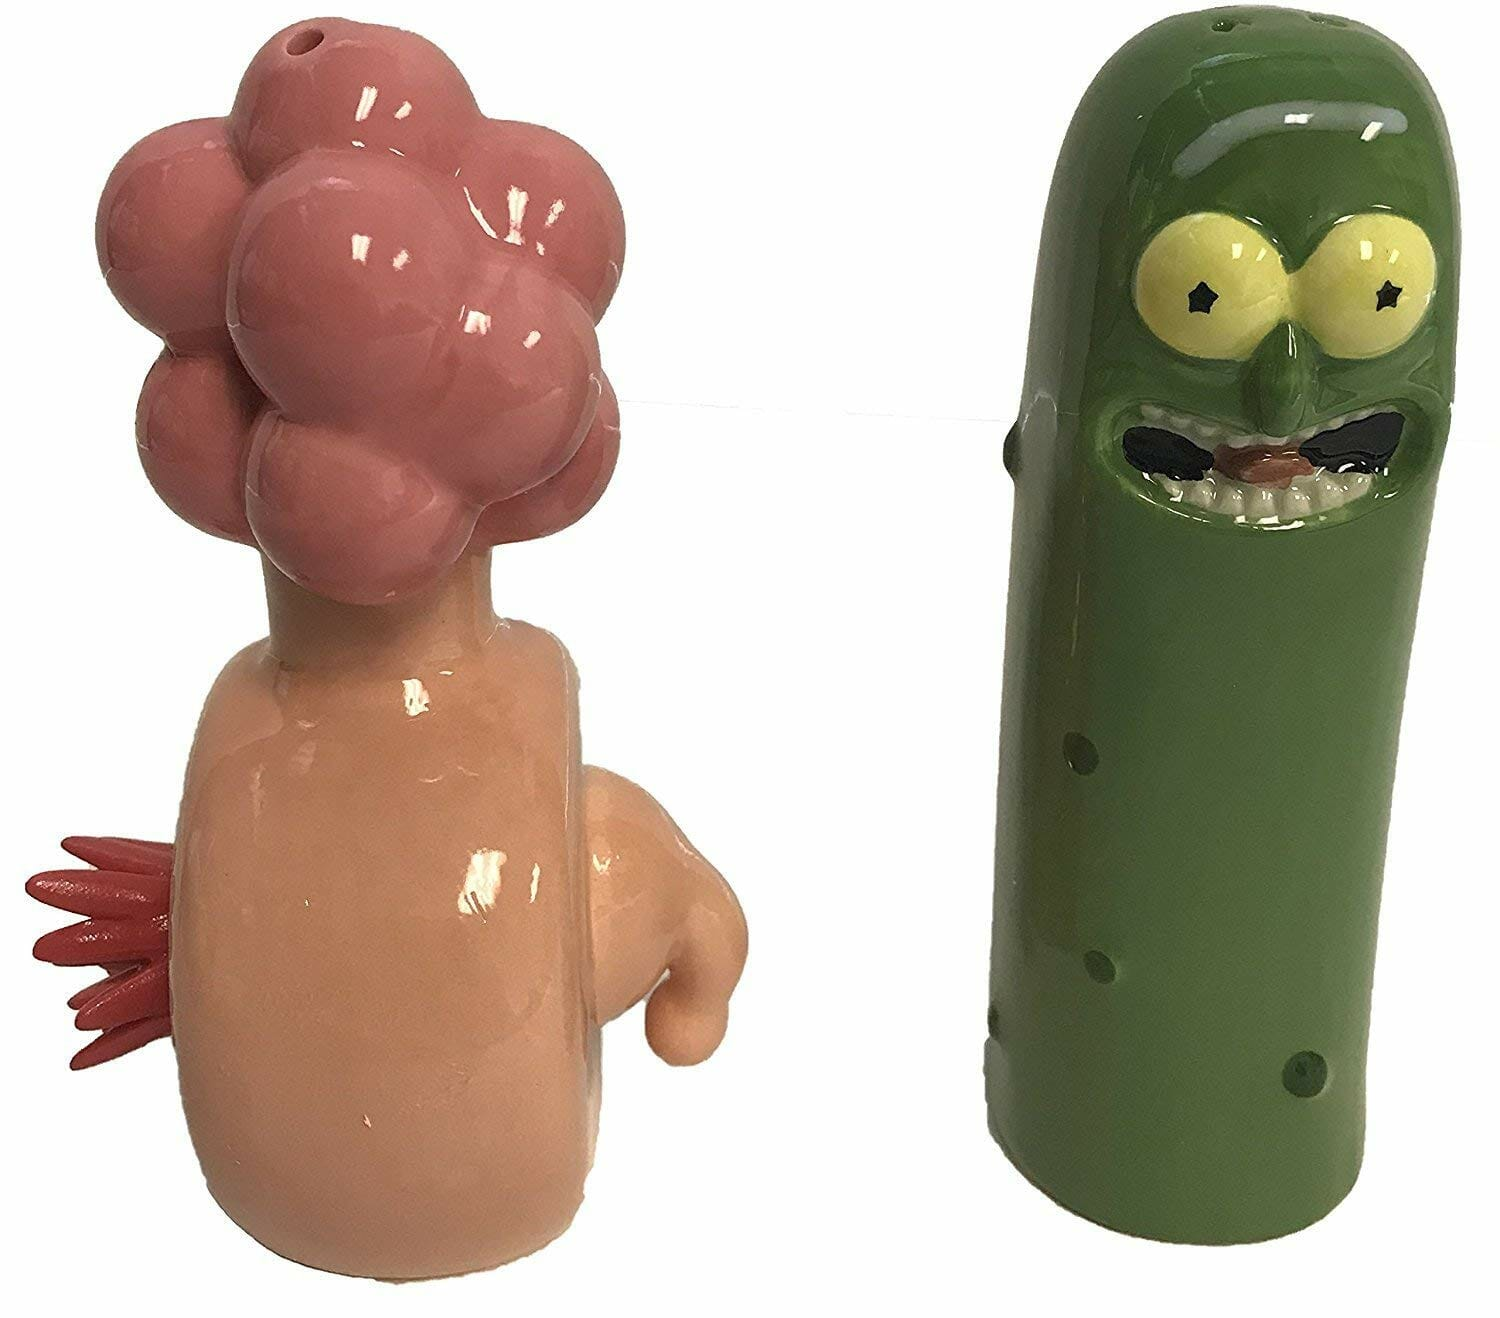 rick-and morty-gifts-salt-shaker